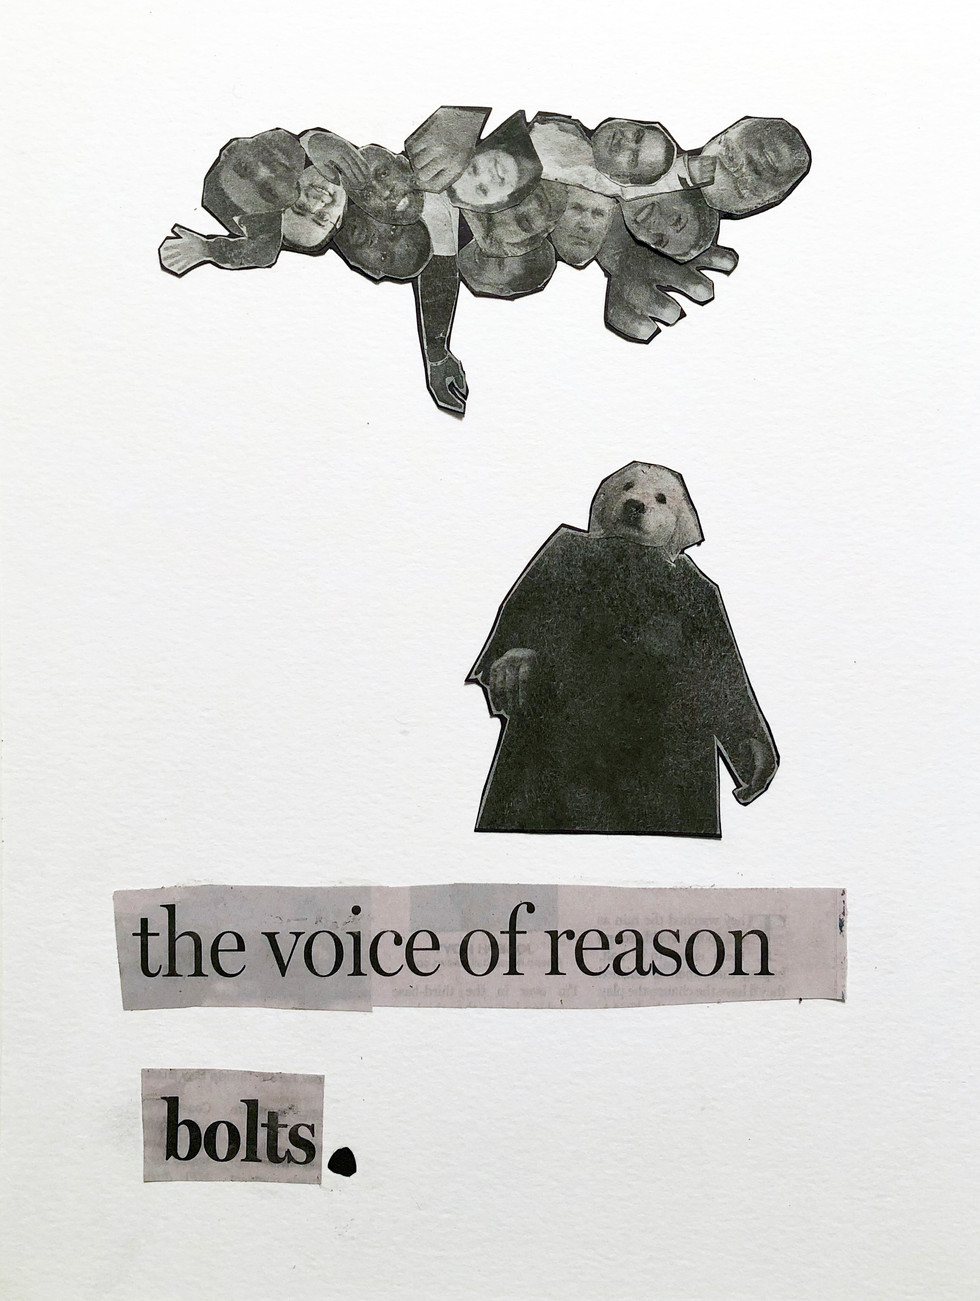 the voice of reason bolts.